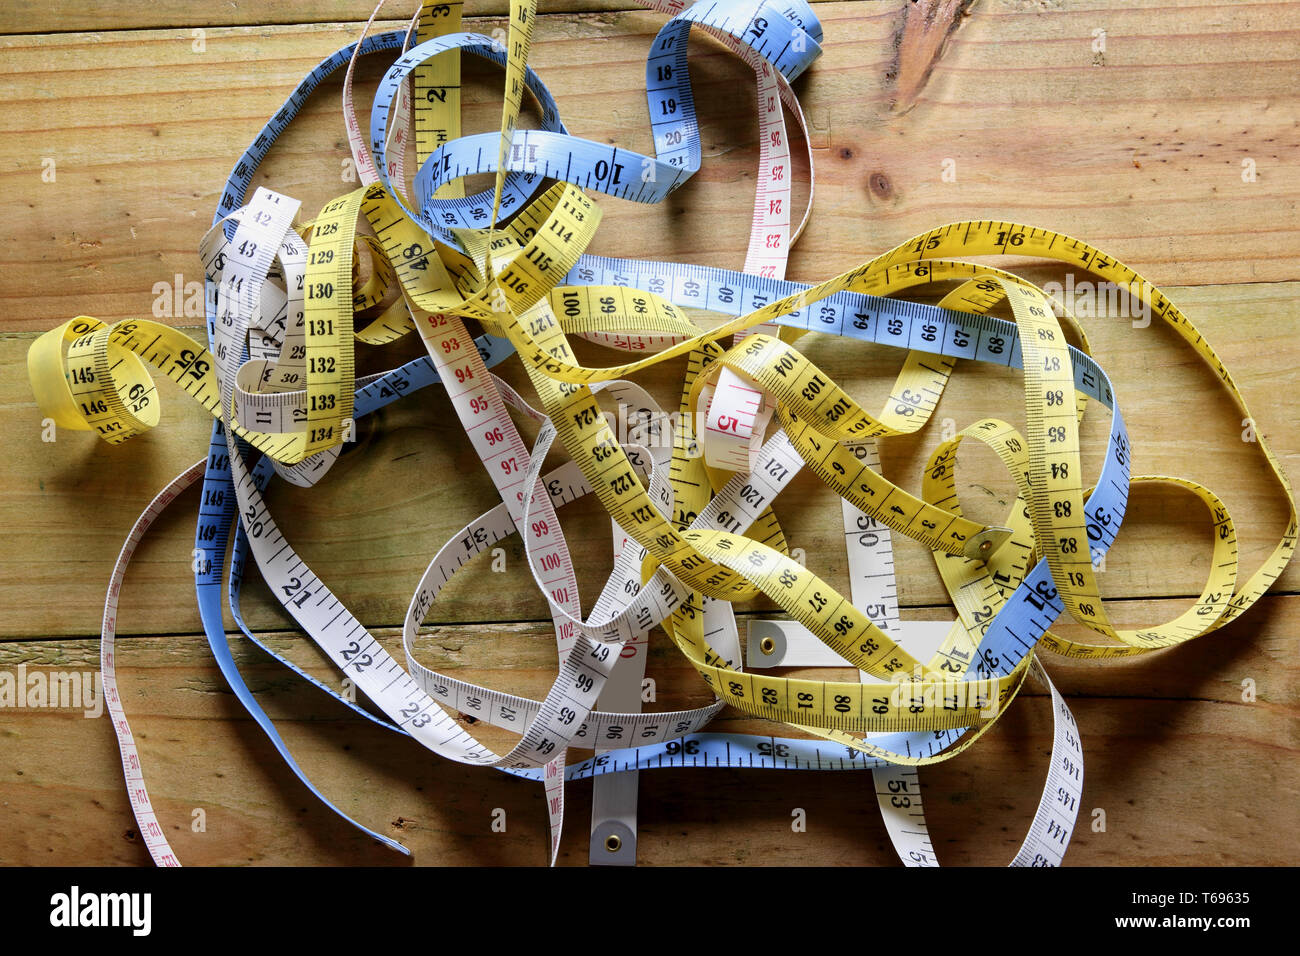 Tape Measures on Wooden Background - Stock Image